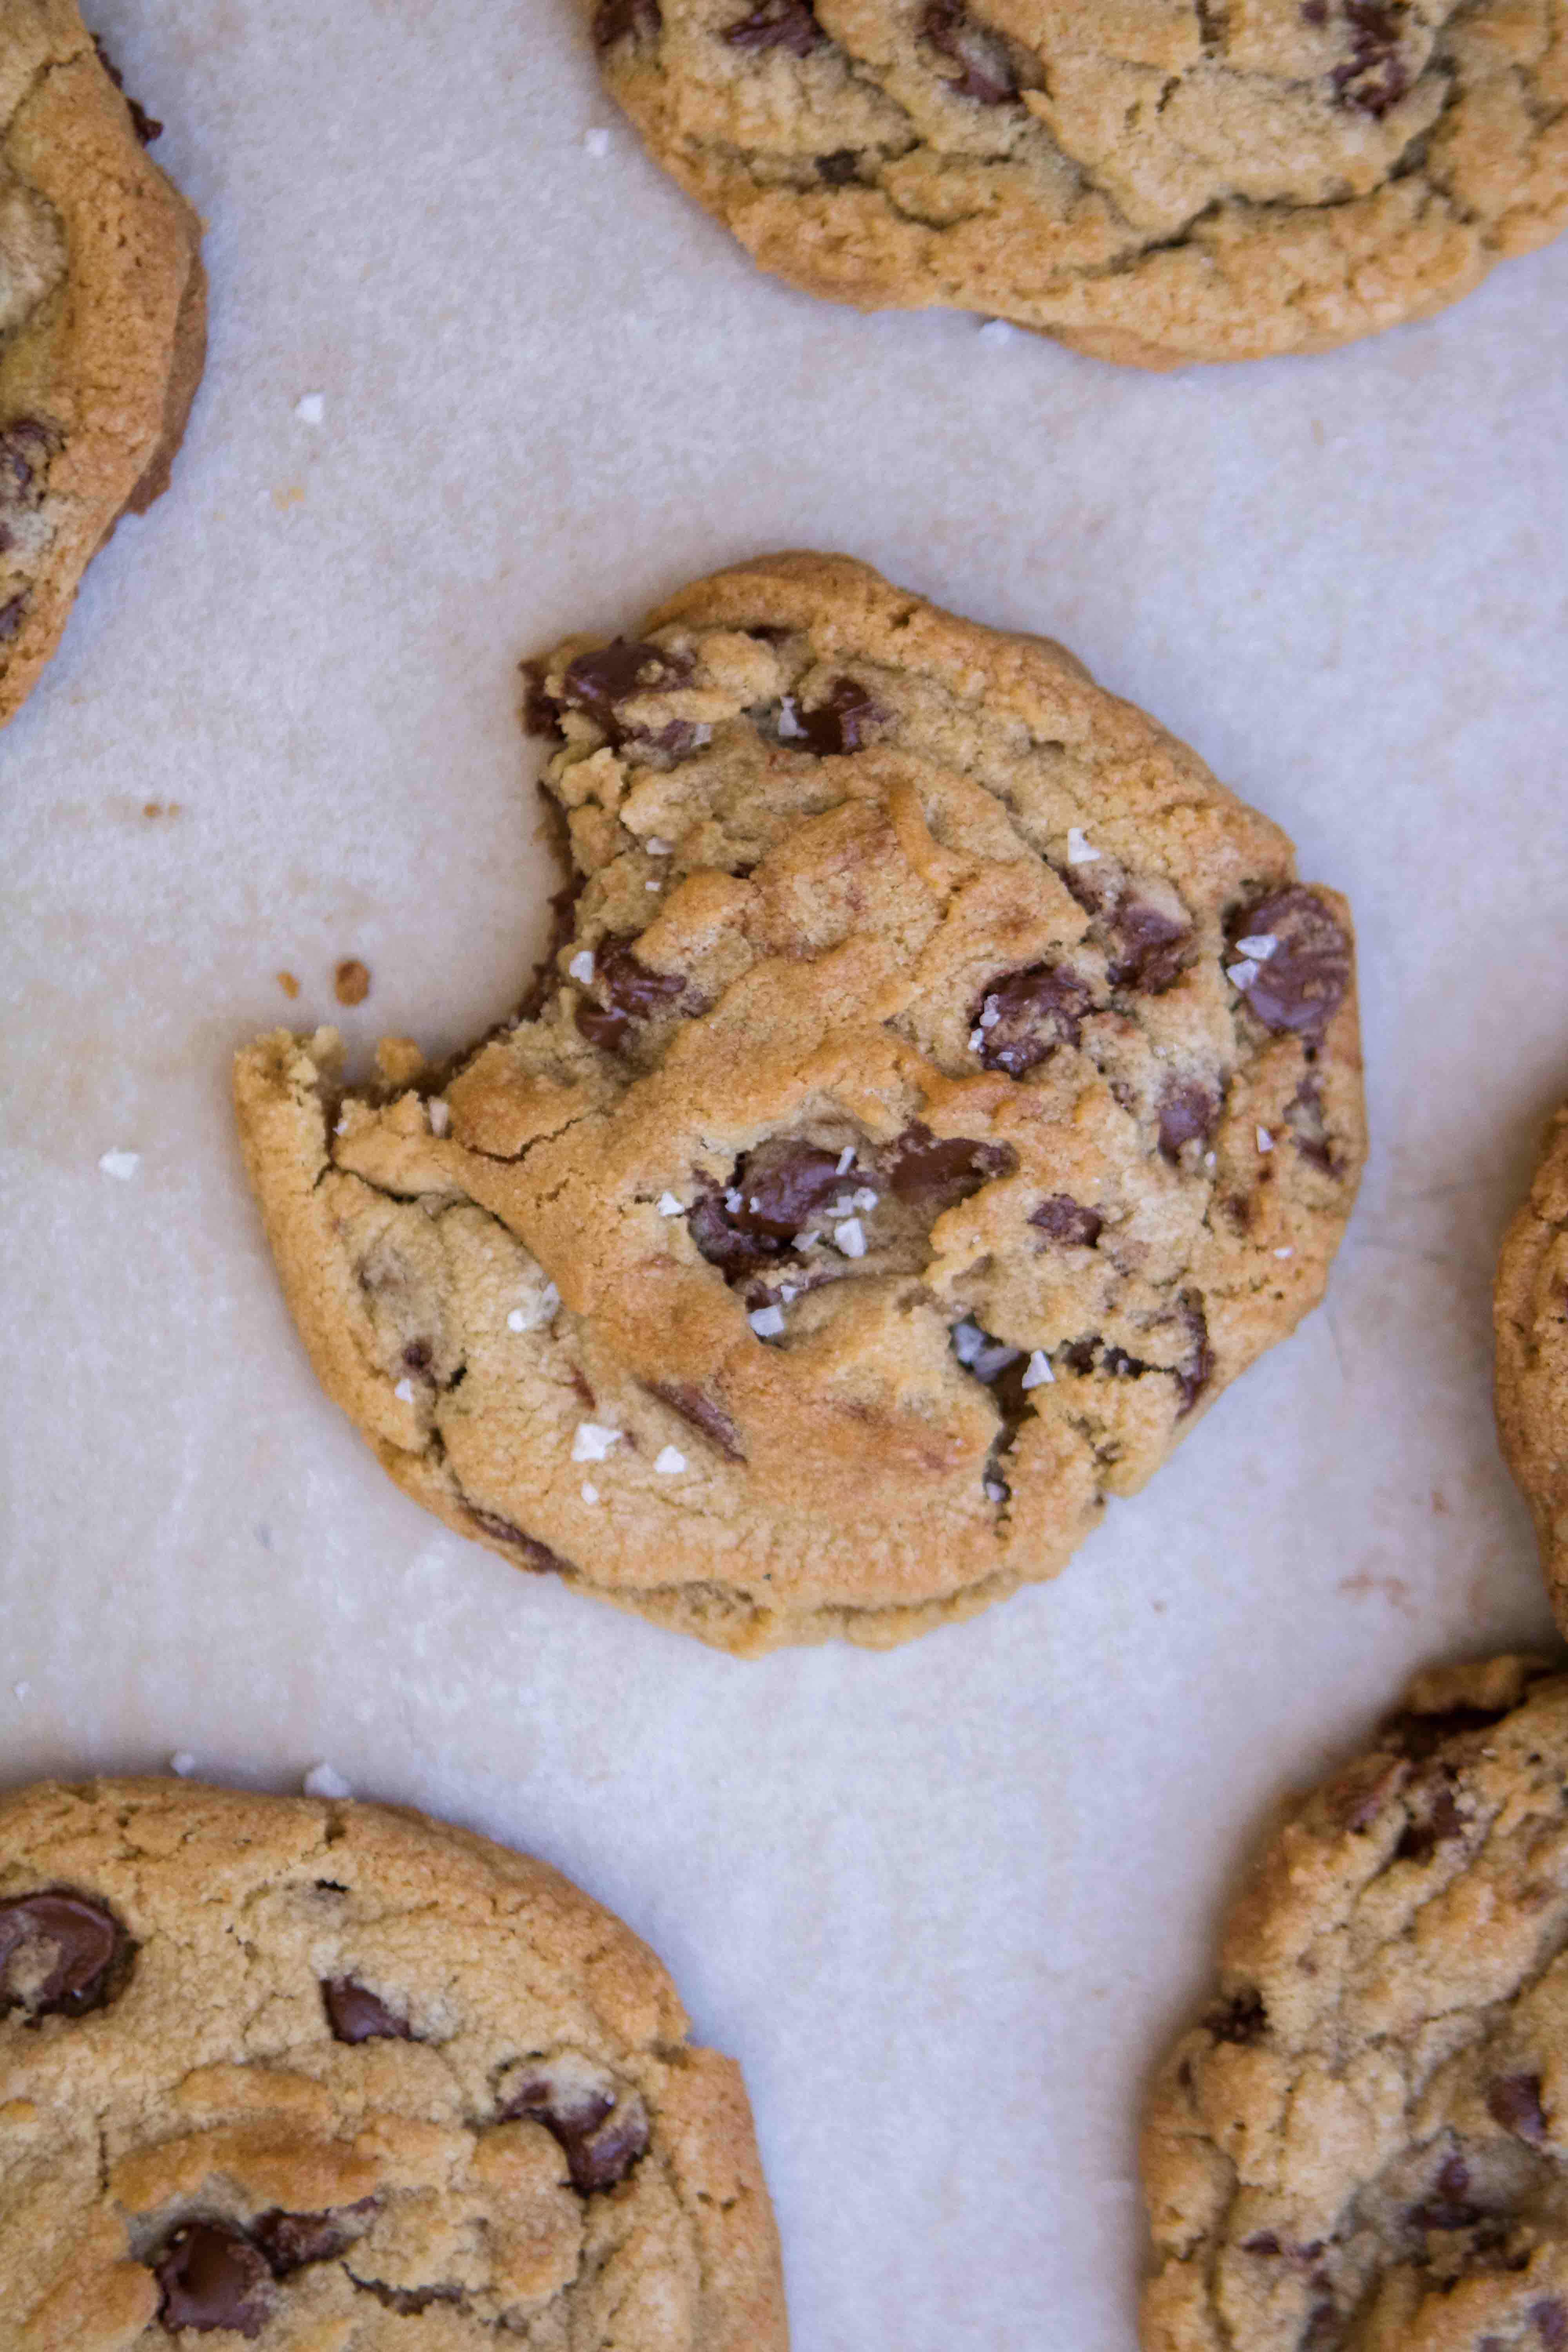 Chocolate chip cookies with brown sugar with crispy edges and gooey centers